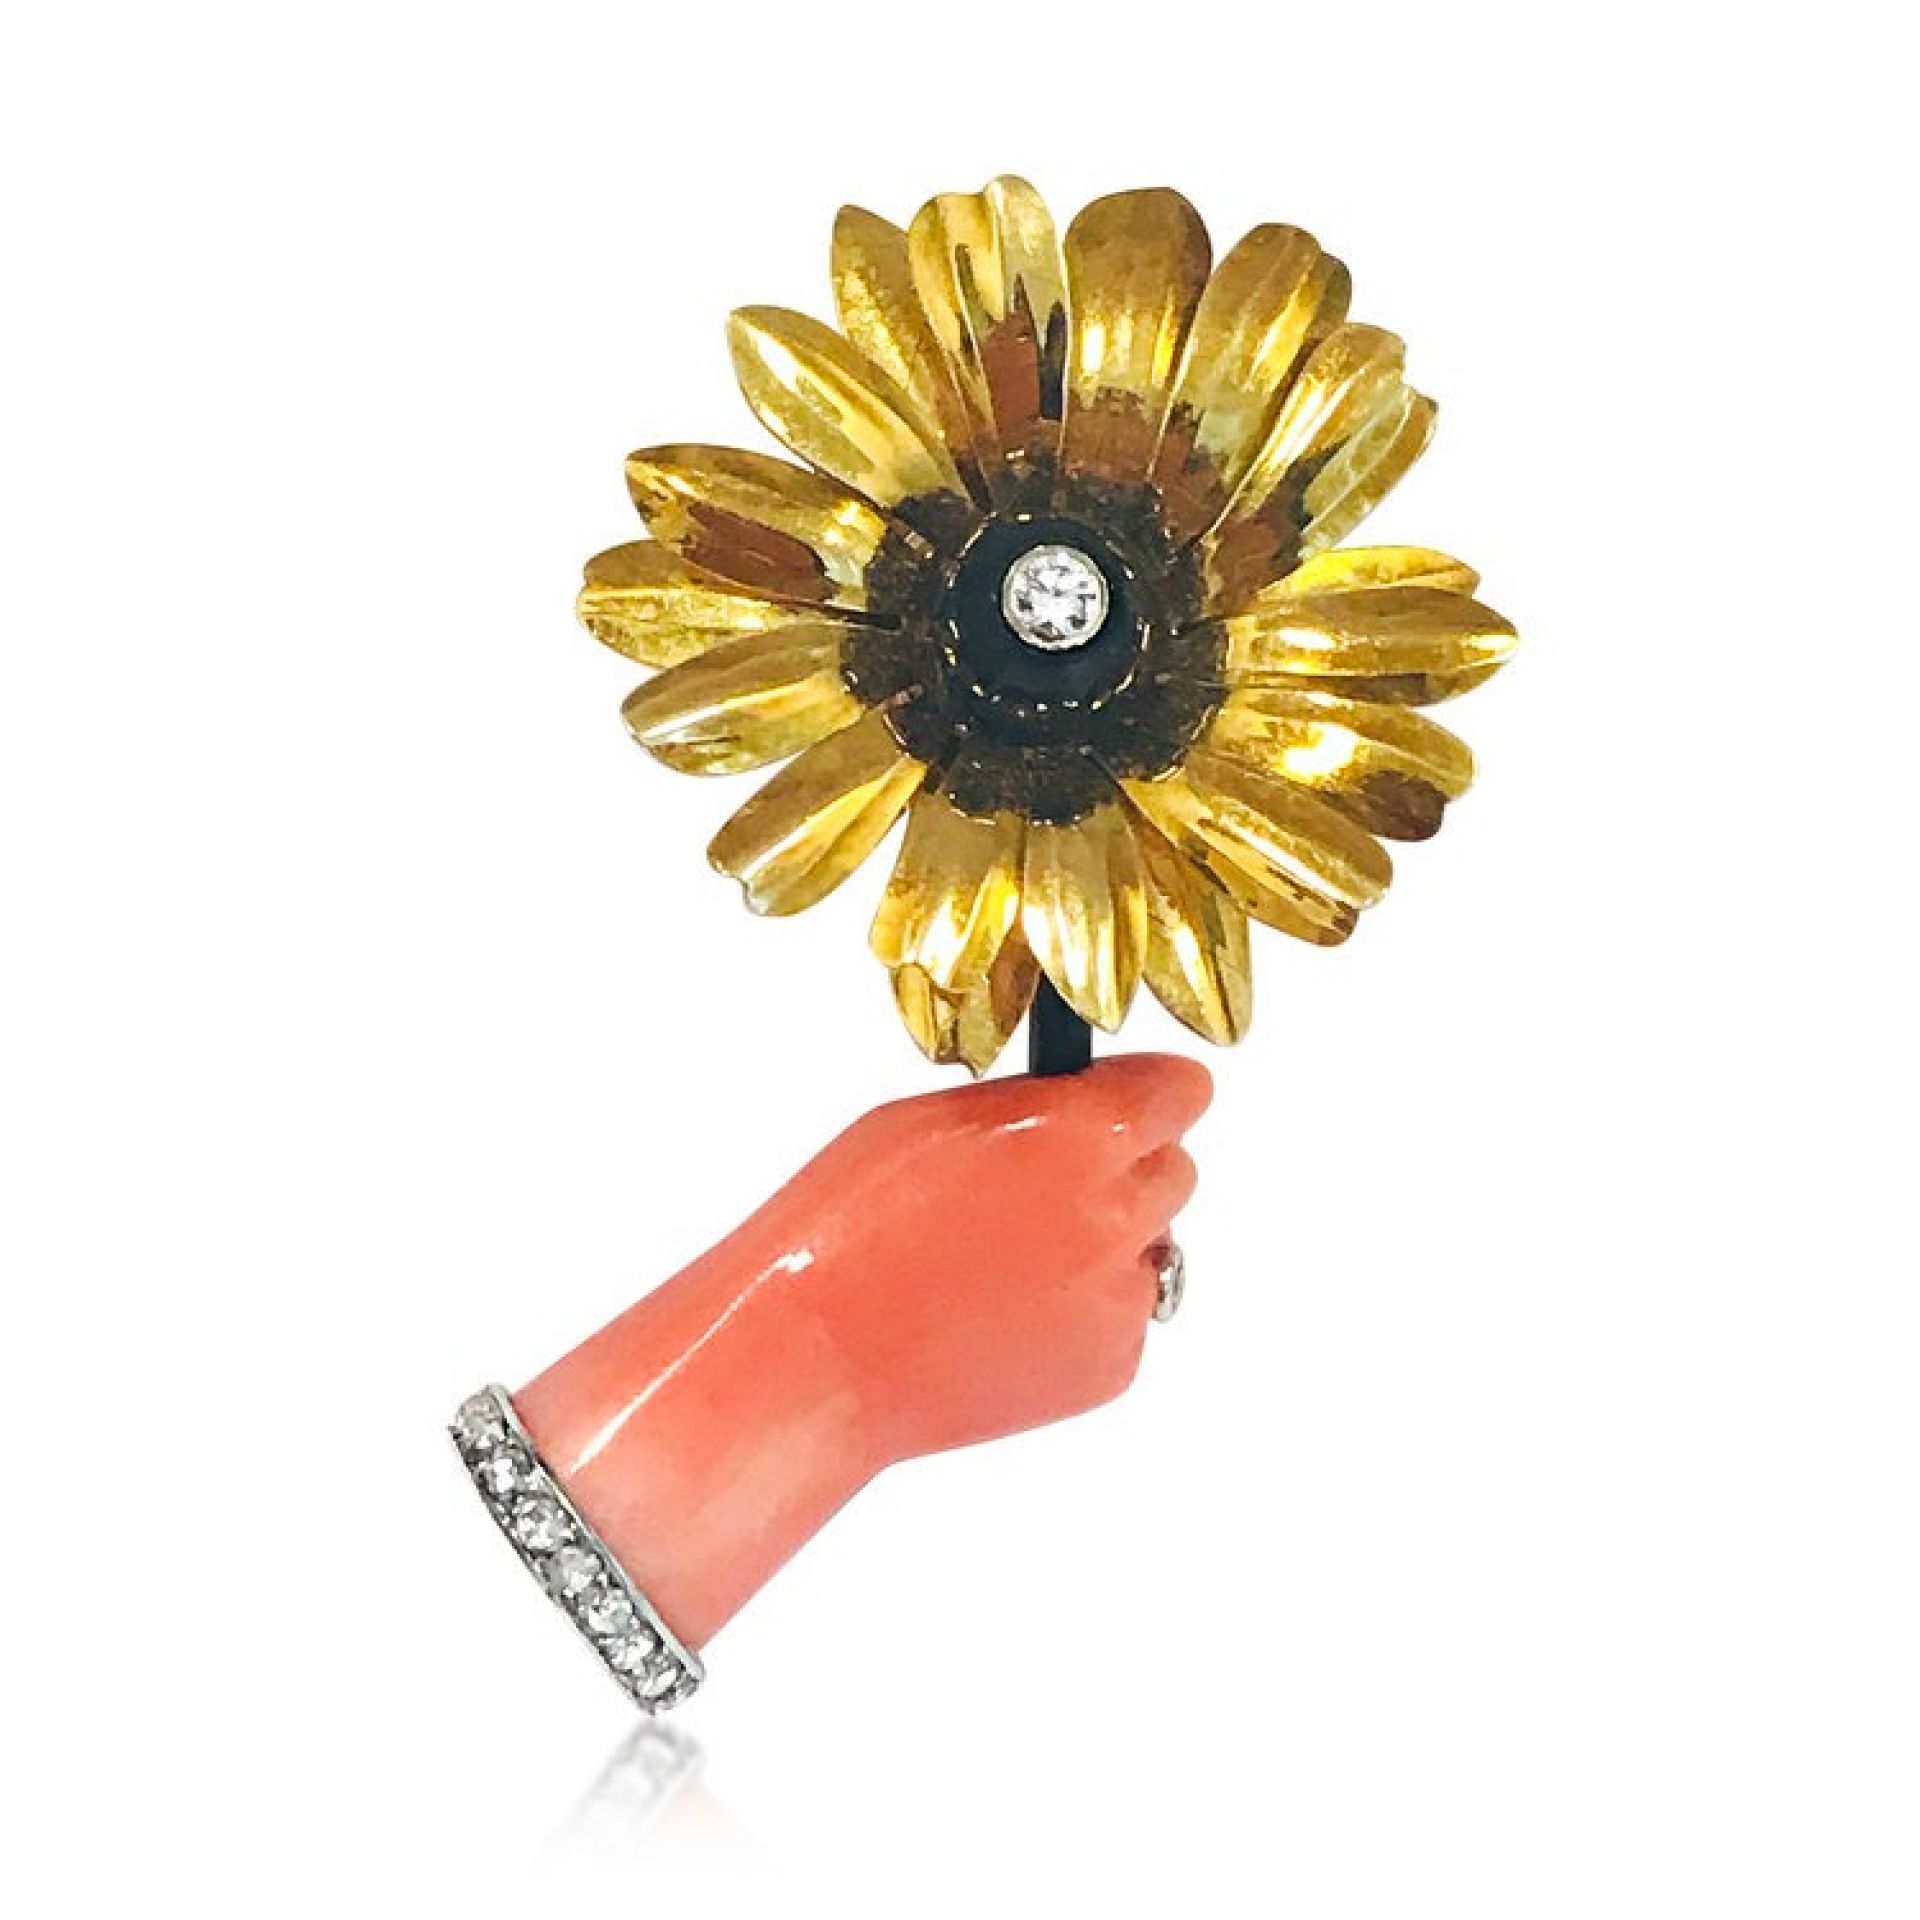 A GOLD AND PLATINUM CORAL DIAMOND HAND WITH FLOWER BROOCH